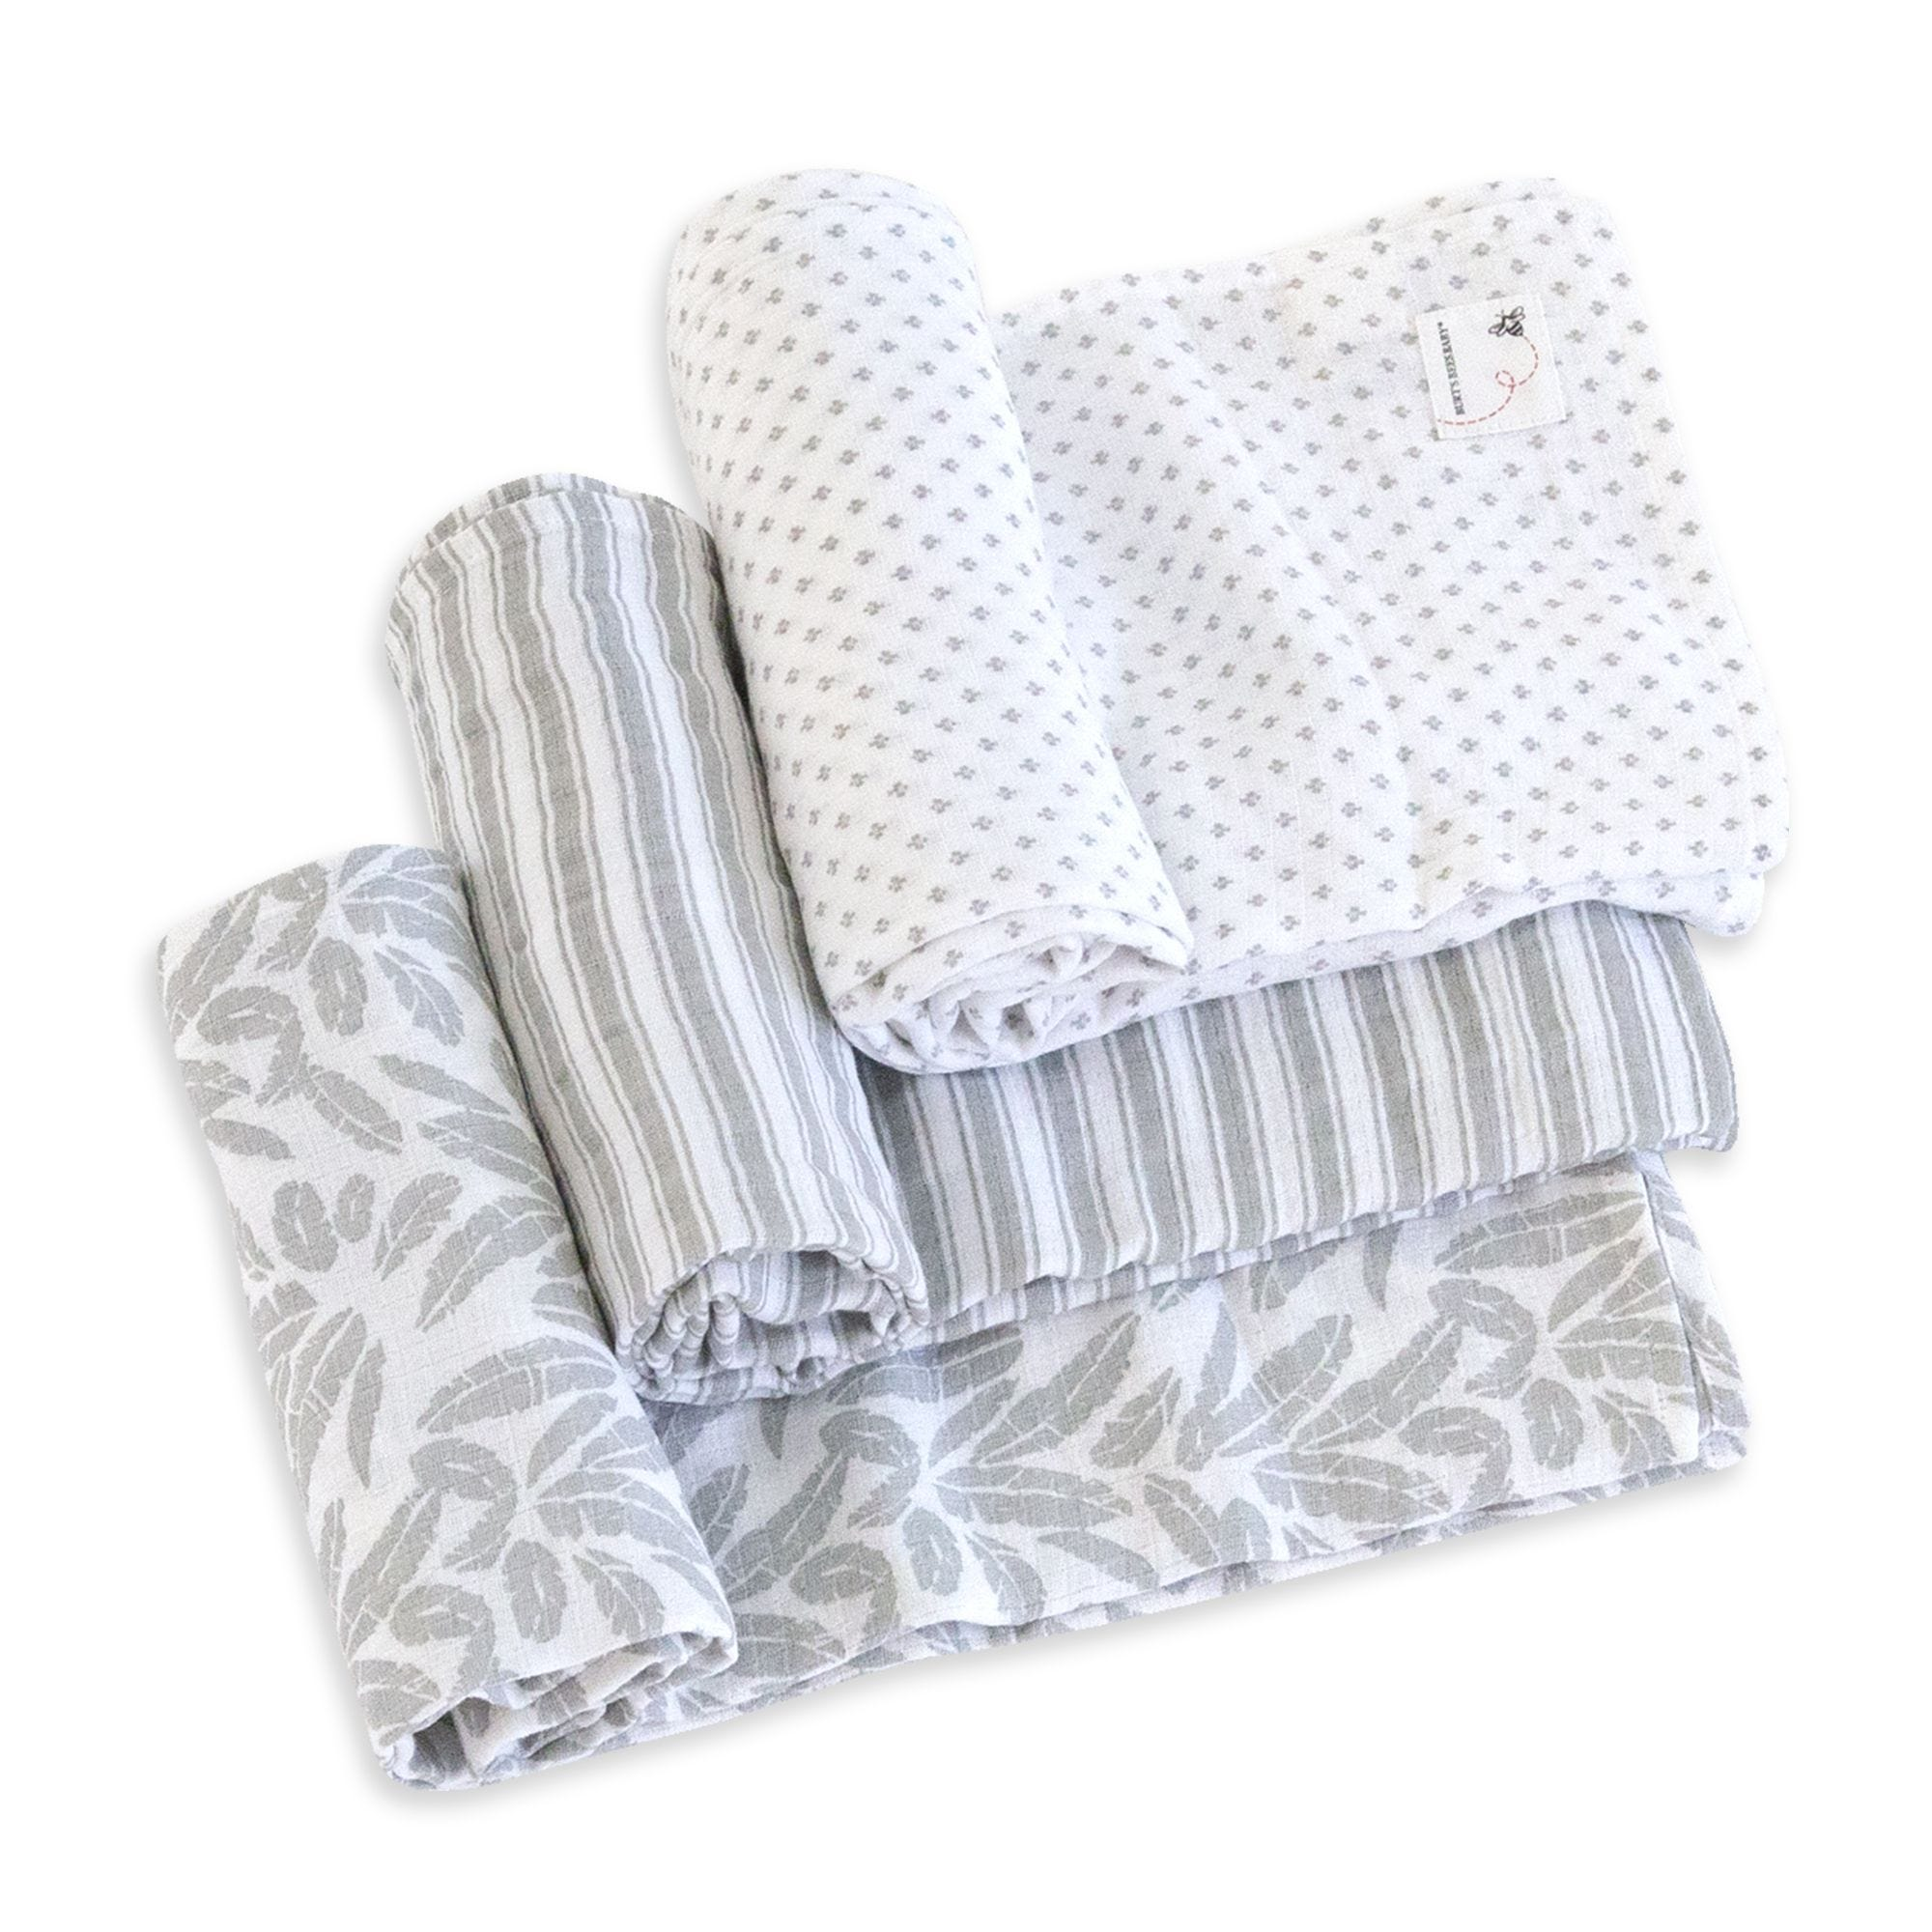 be60b0ed11dbd Dottie Bee Organic Cotton Woven Muslin Baby Swaddle Blankets 3 Pack Fog